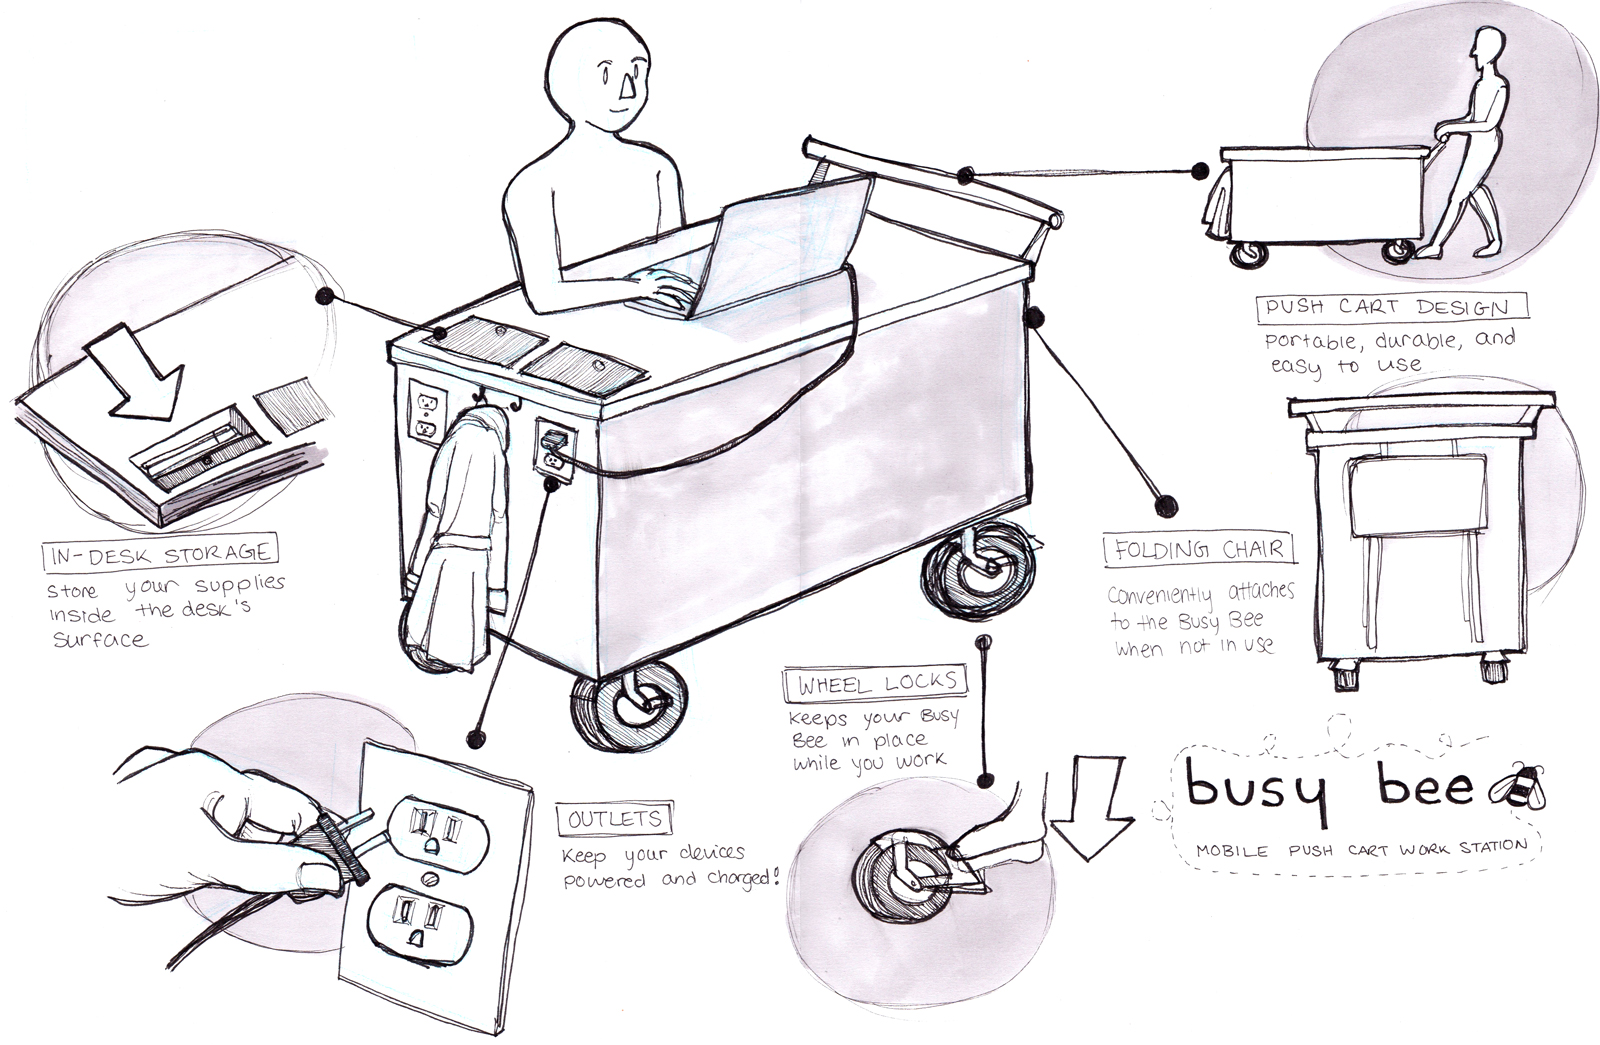 Busy Bee - Mobile Workspace Concept (2015)